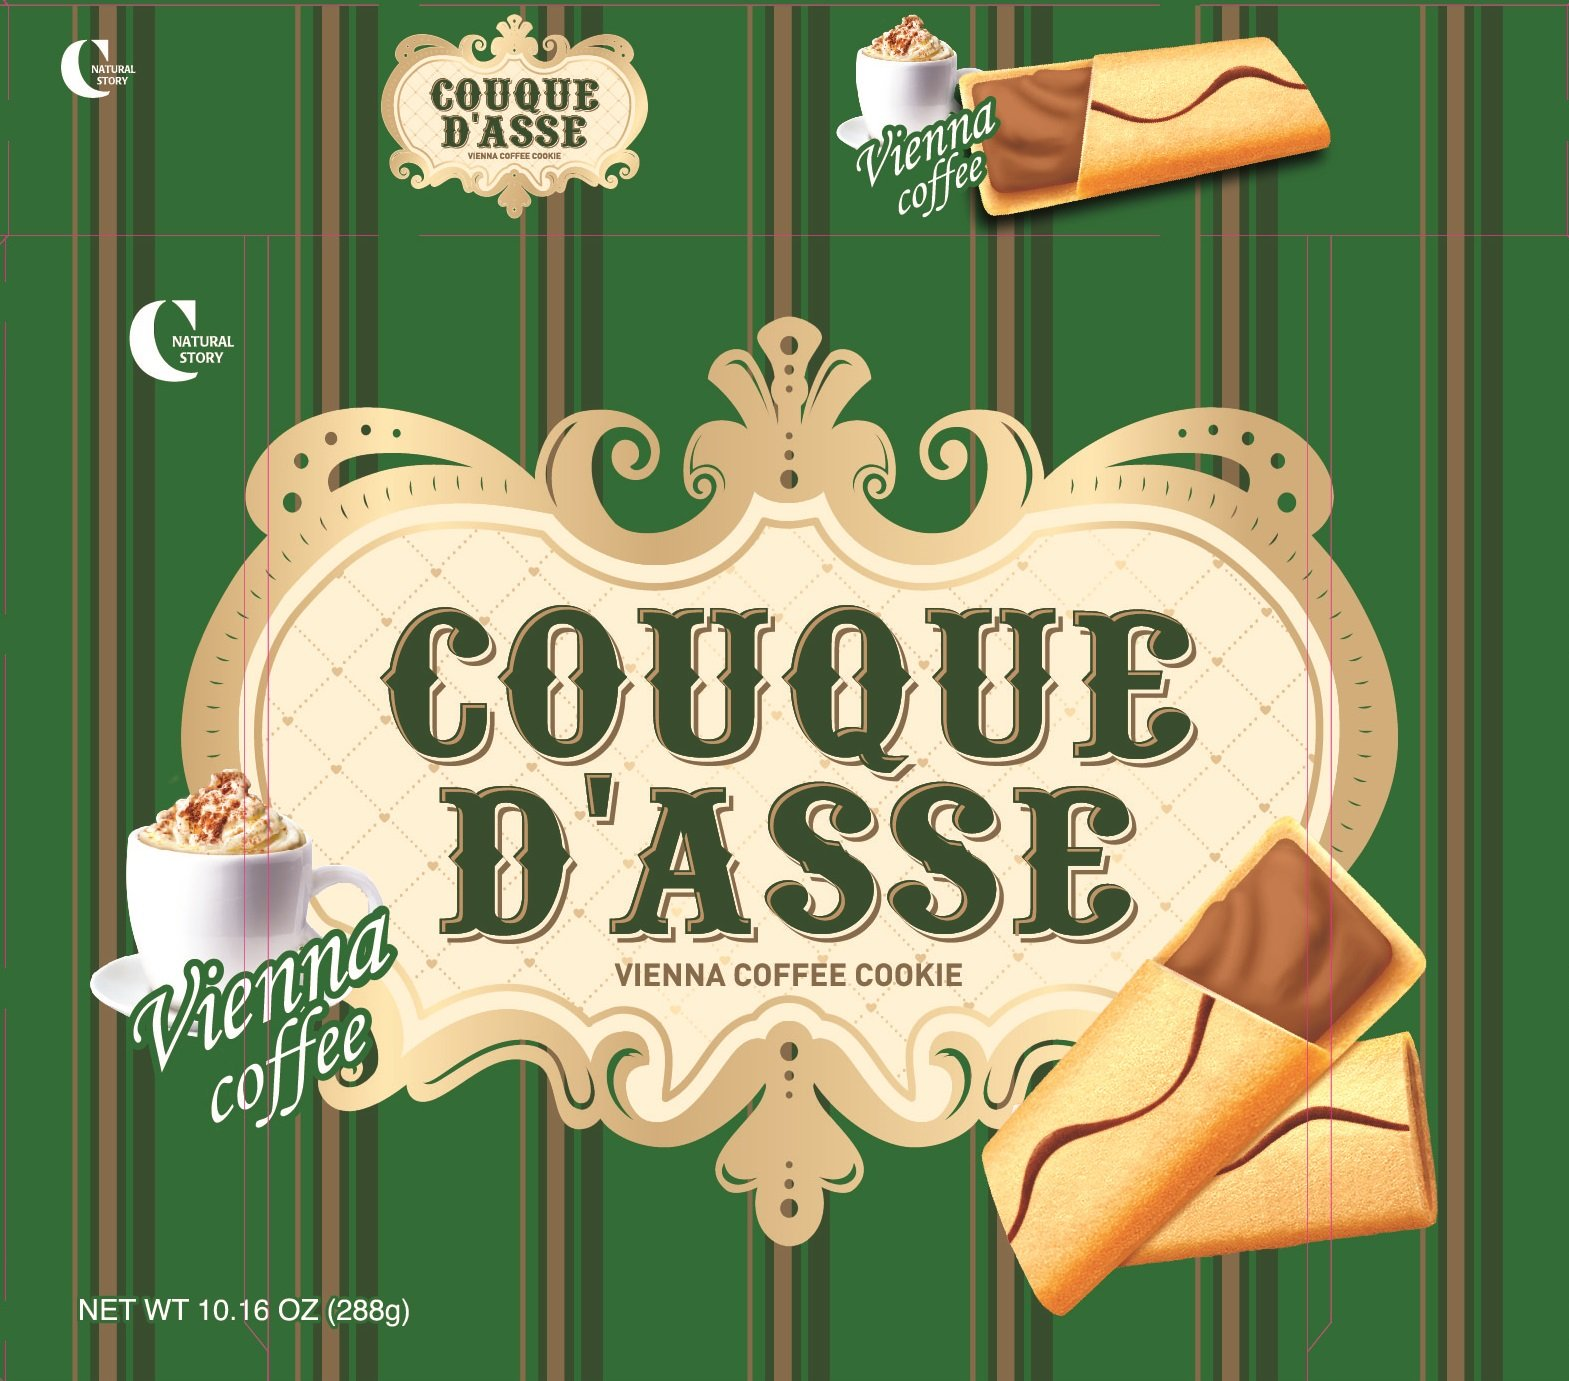 Natural Story Couque D'Asse Vienna Coffee Cookie, 10.16 Ounce